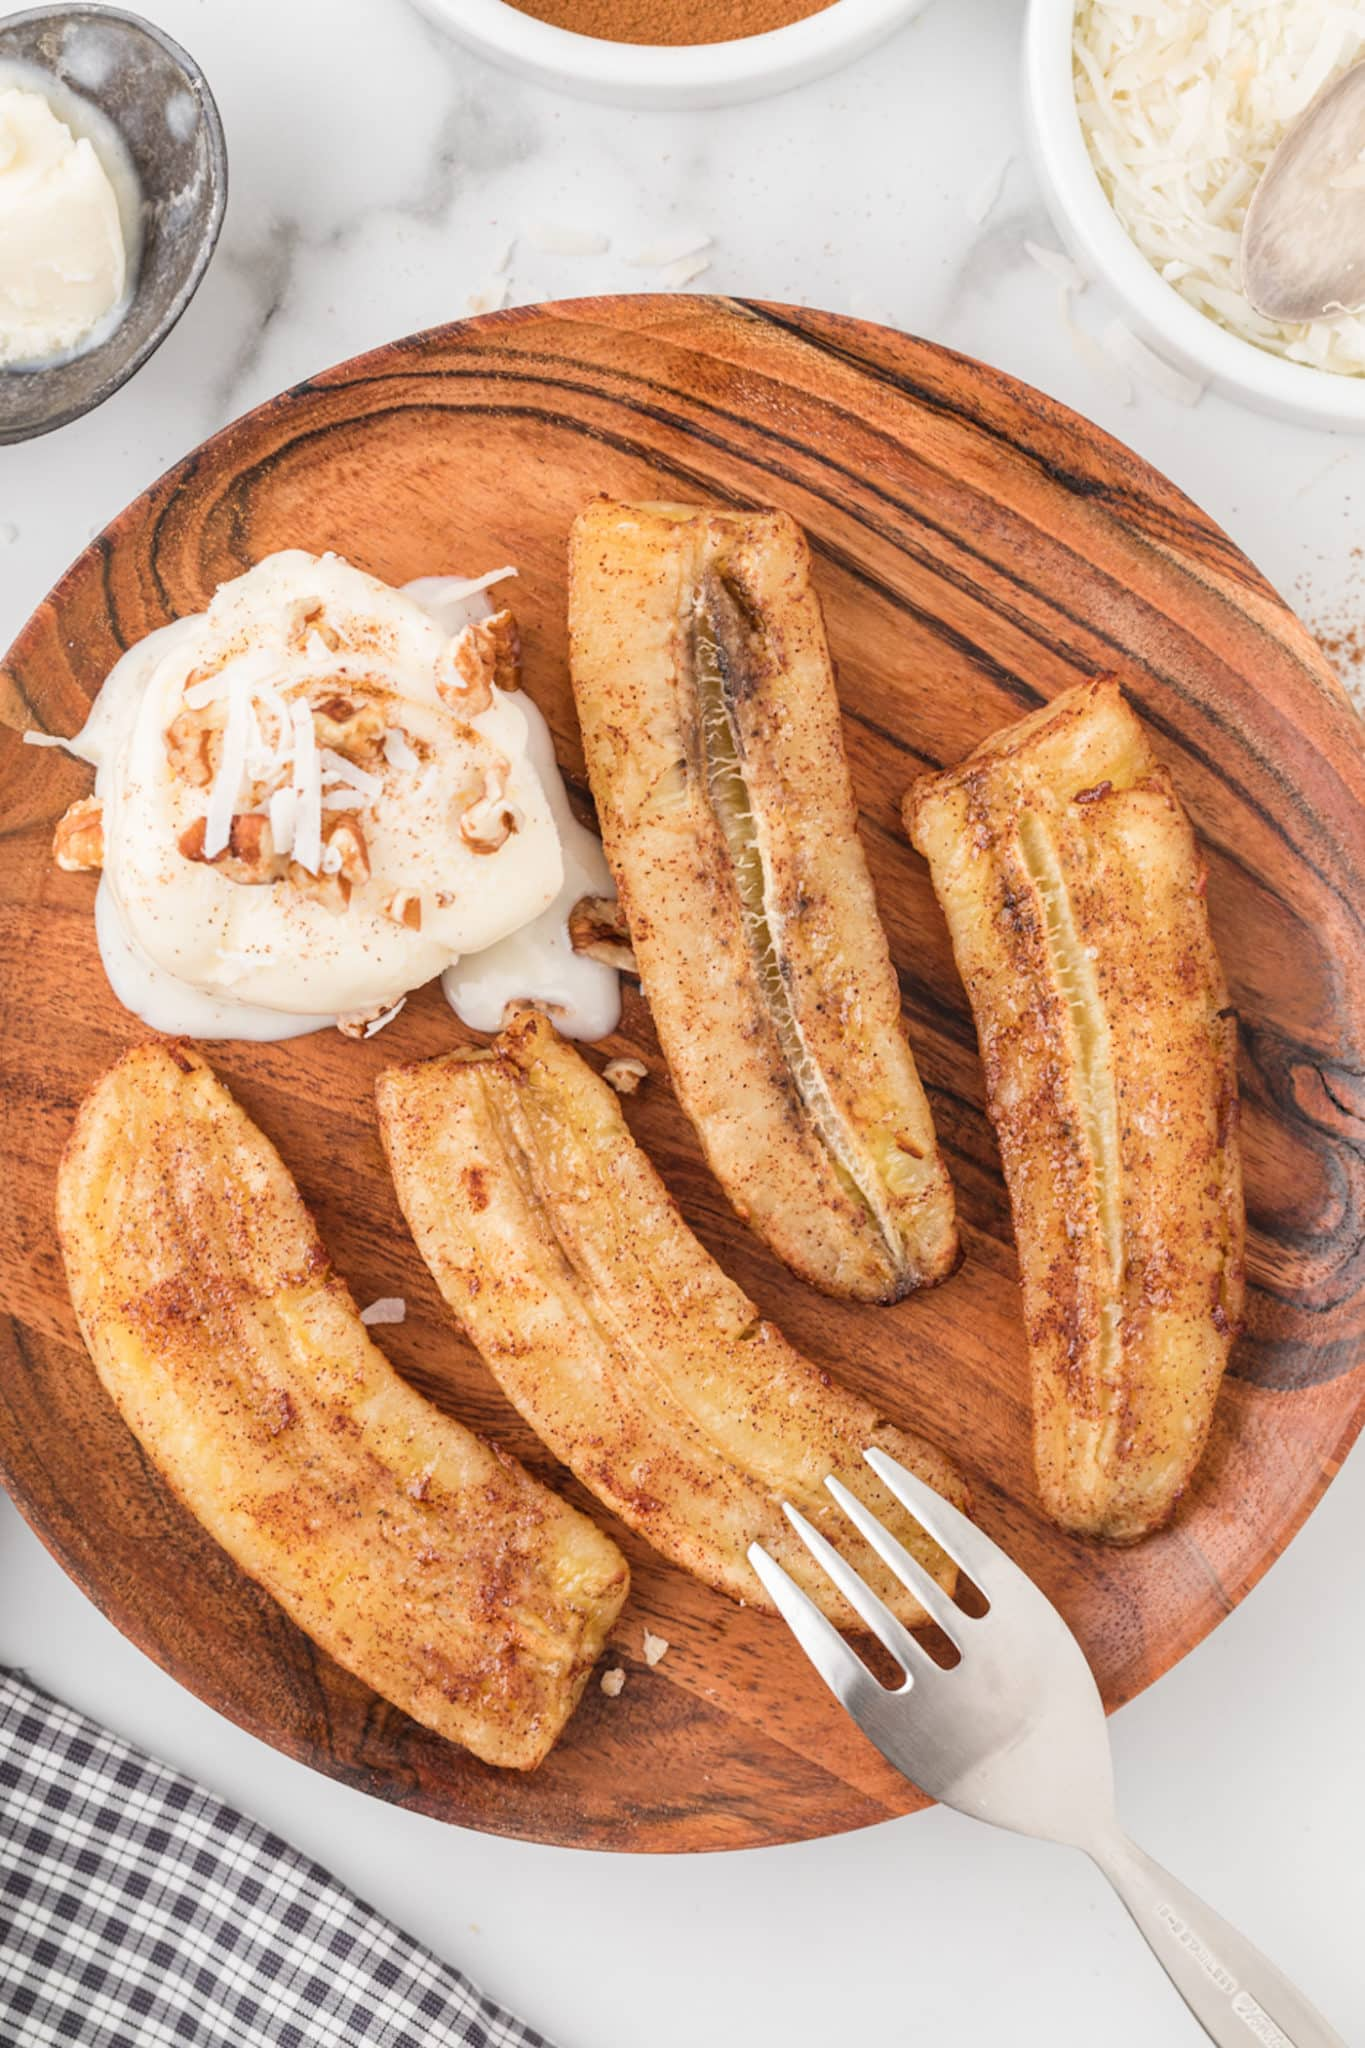 air fried bananas on a wooden plate with ice cream